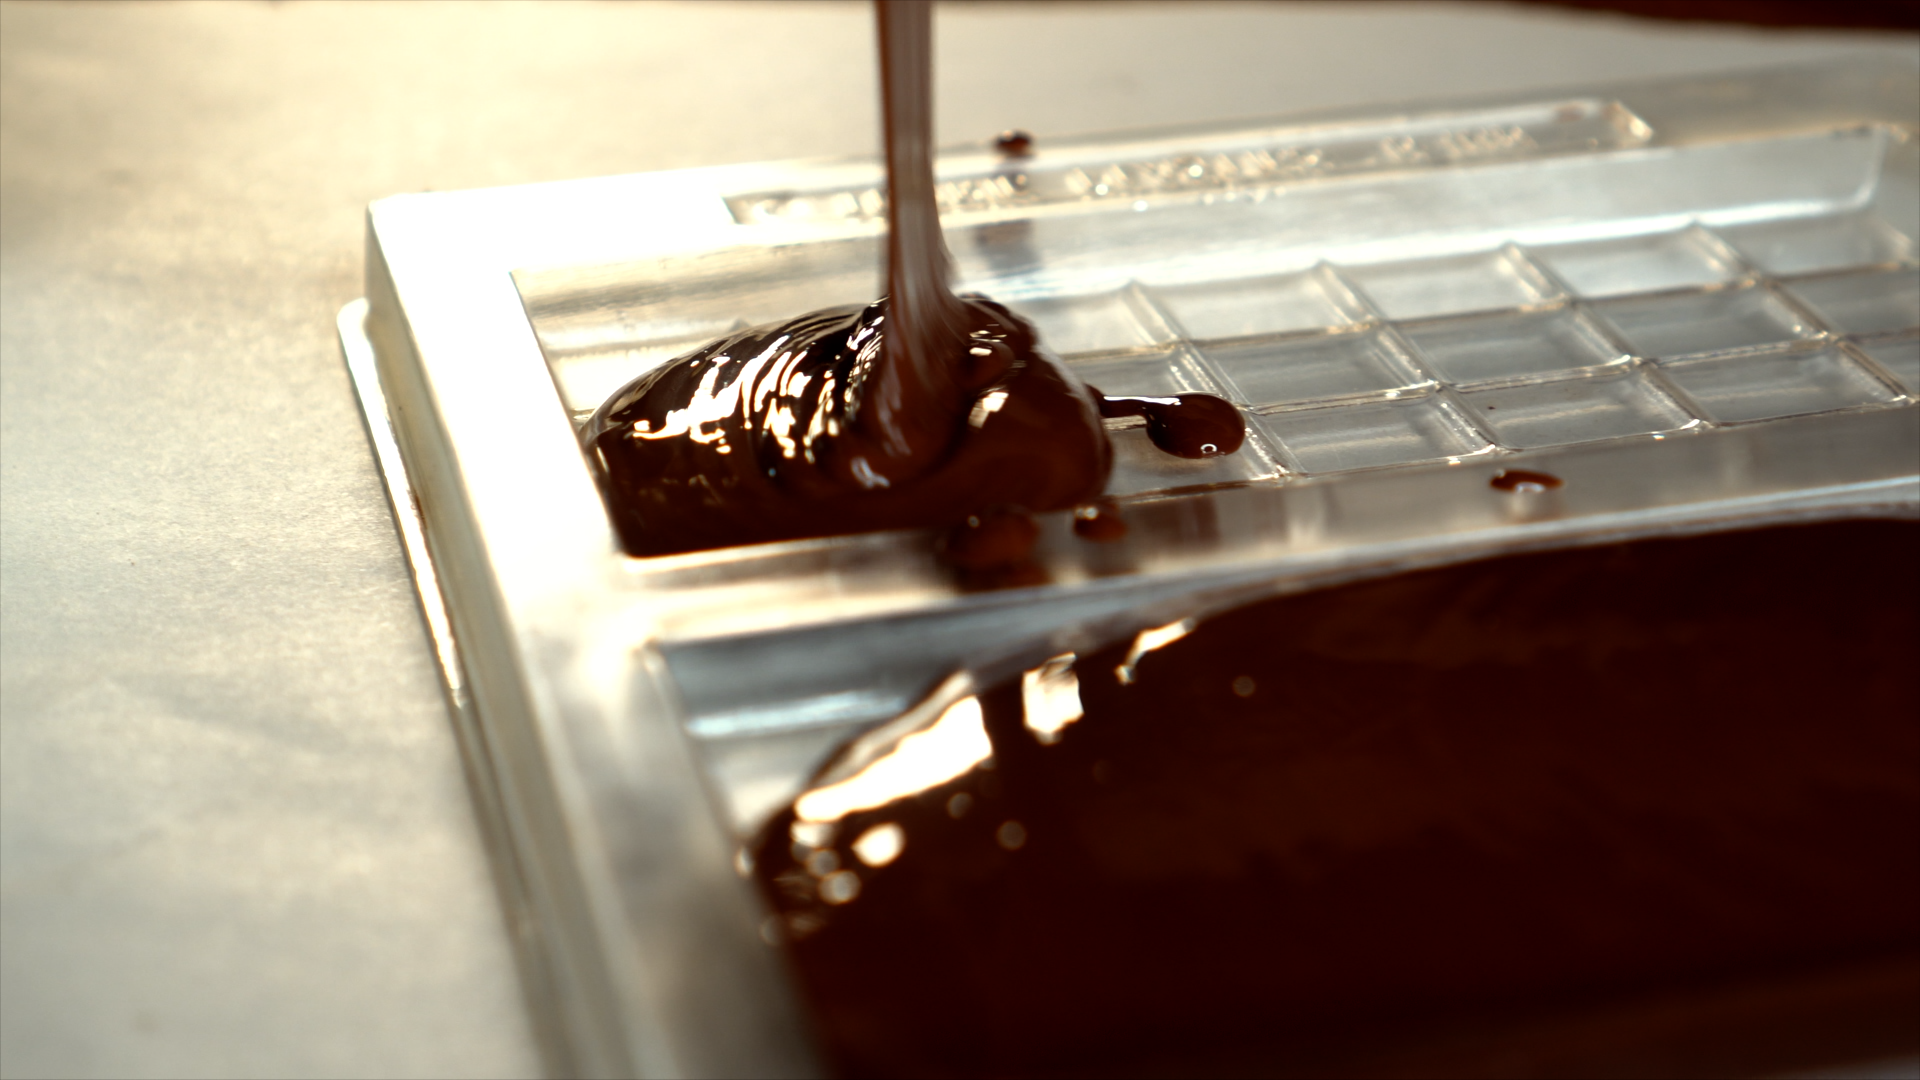 5 - Heavy Molds - Not only will good heavy molds make your chocolate look more professional and like